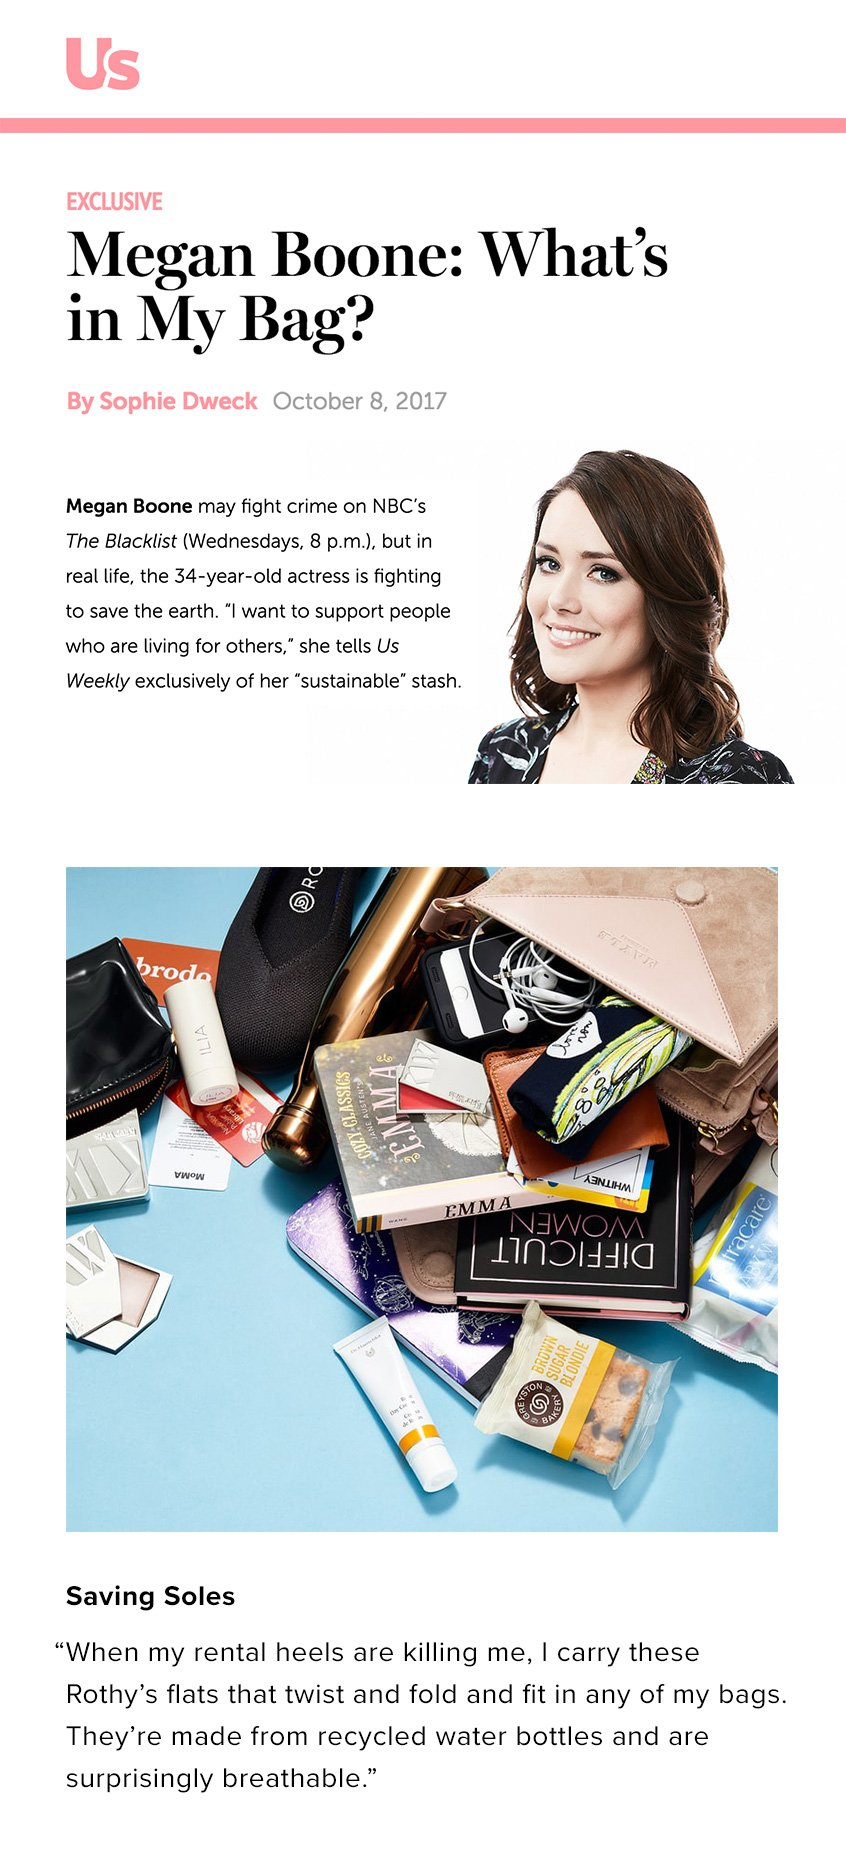 What's in Megan Boone's sustainable stash?